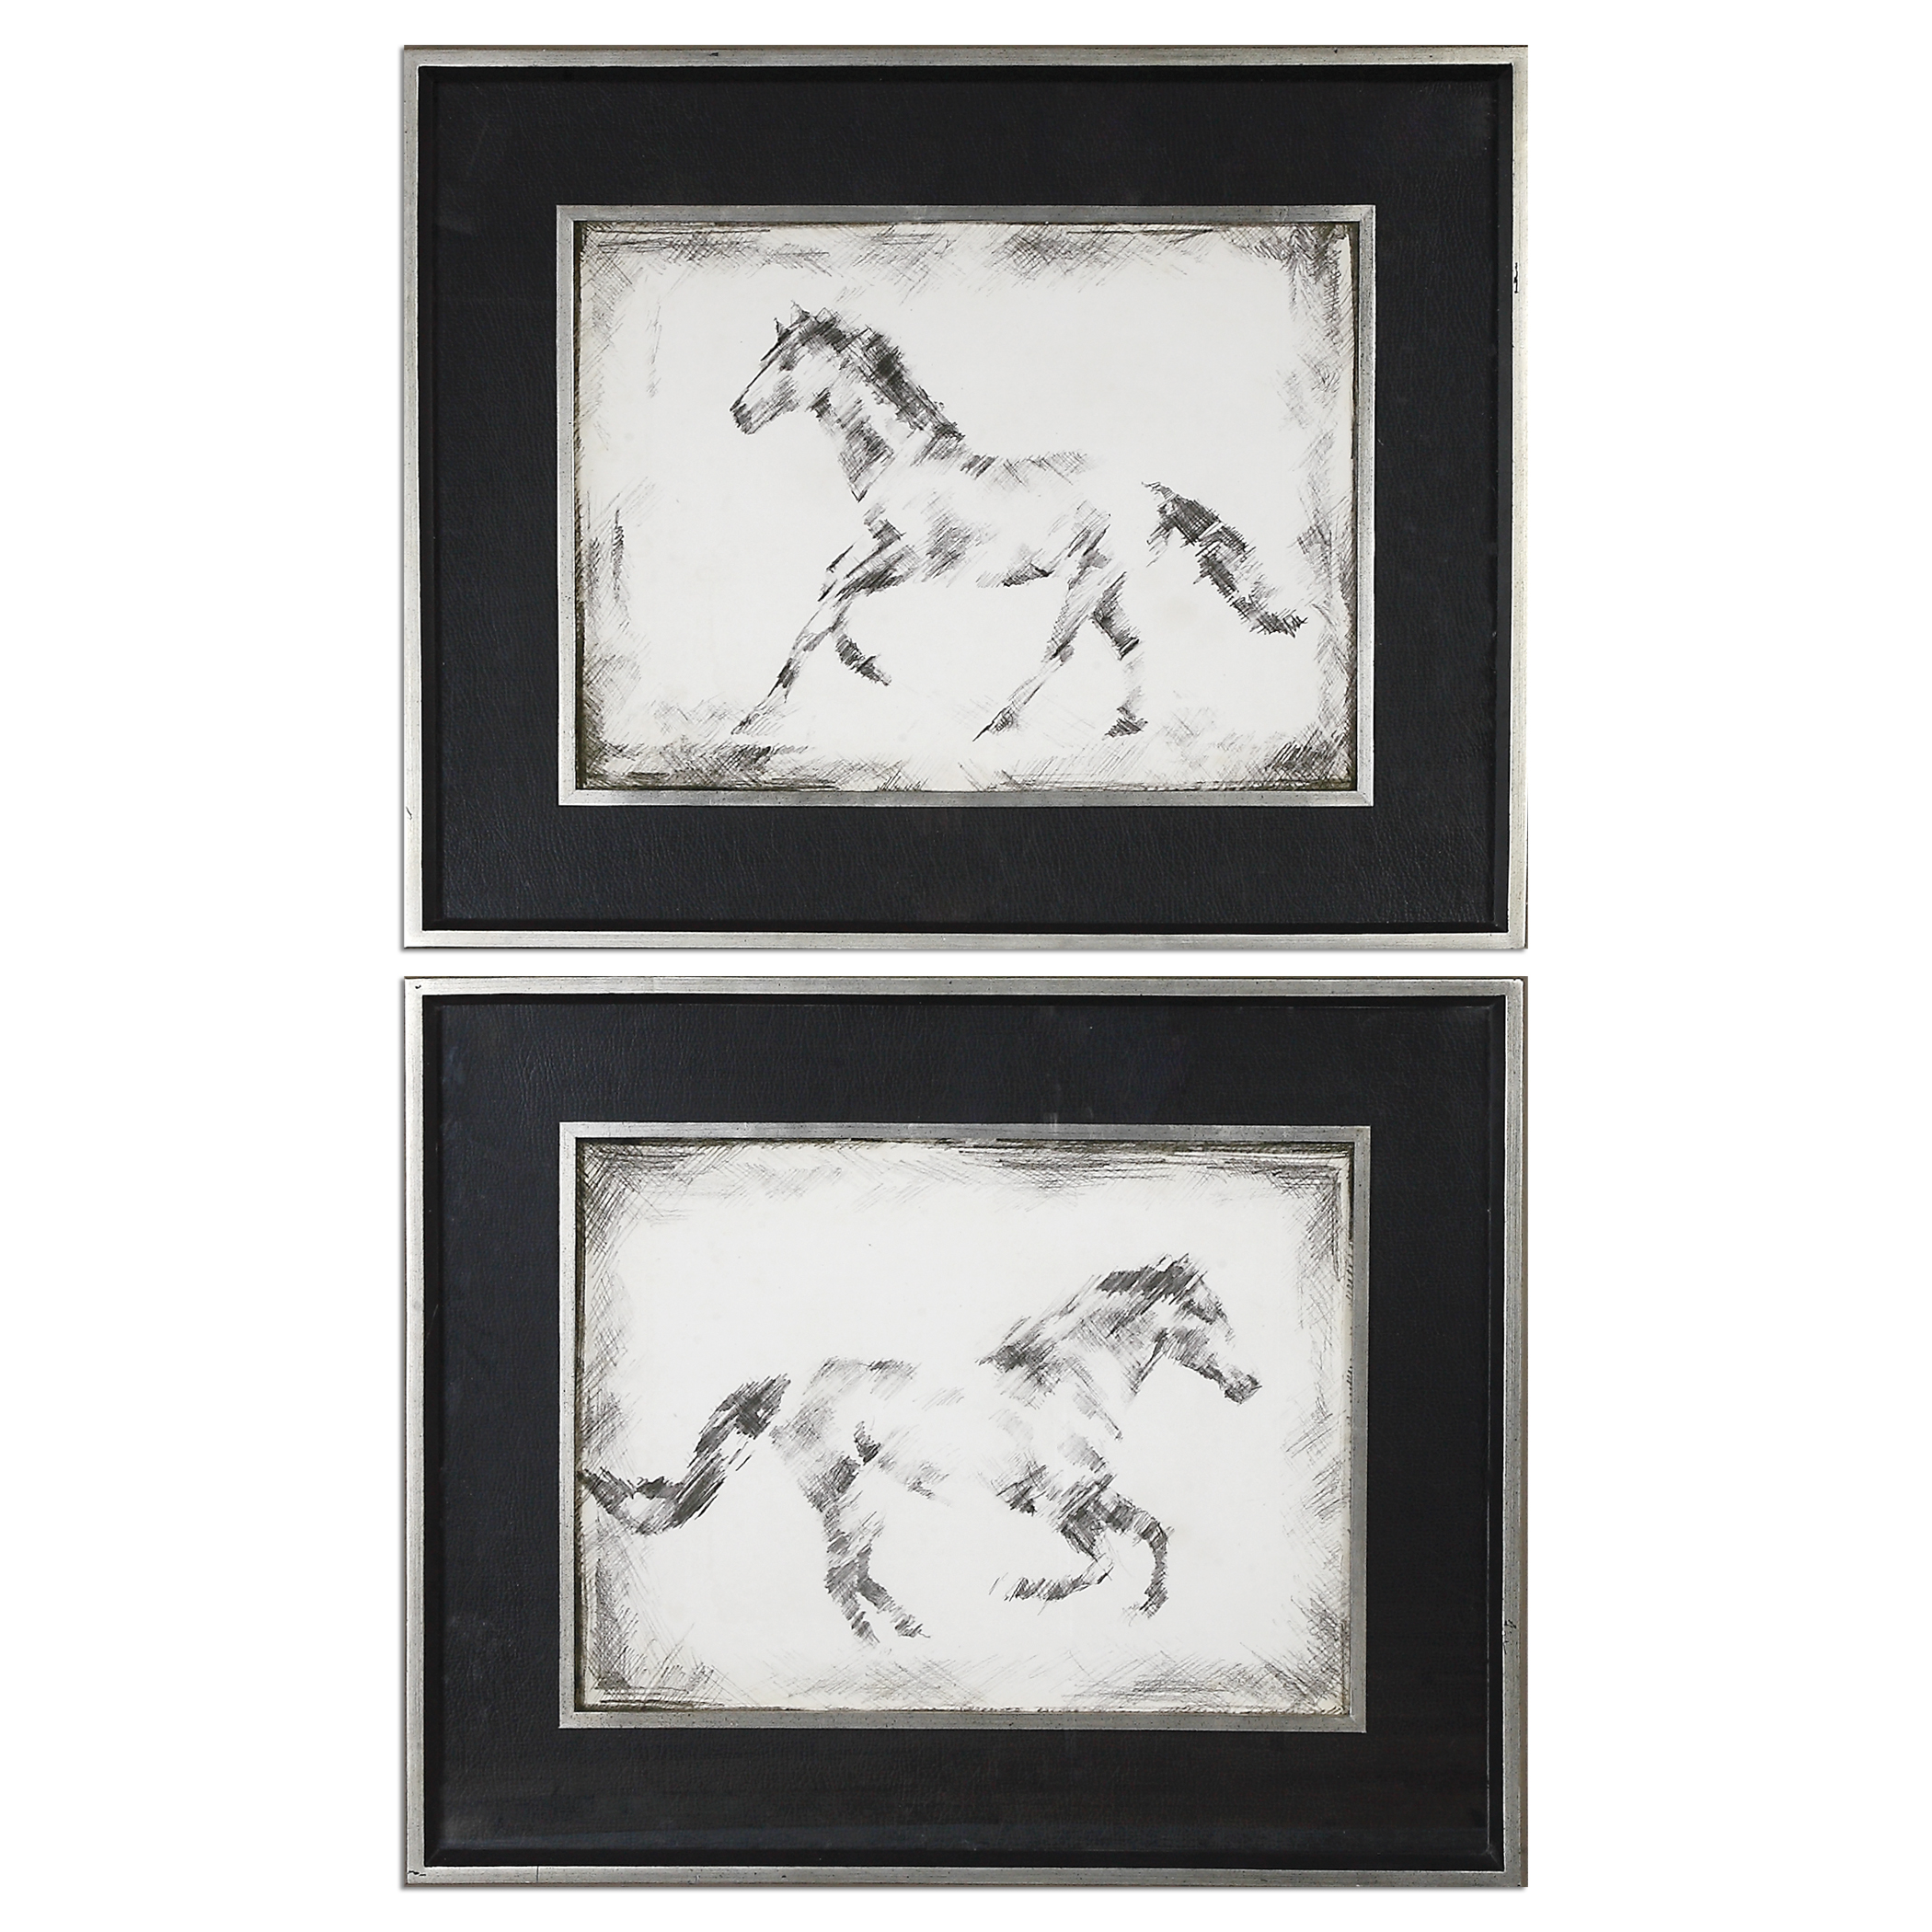 Uttermost Art Equine Study Prints S/2 - Item Number: 41547